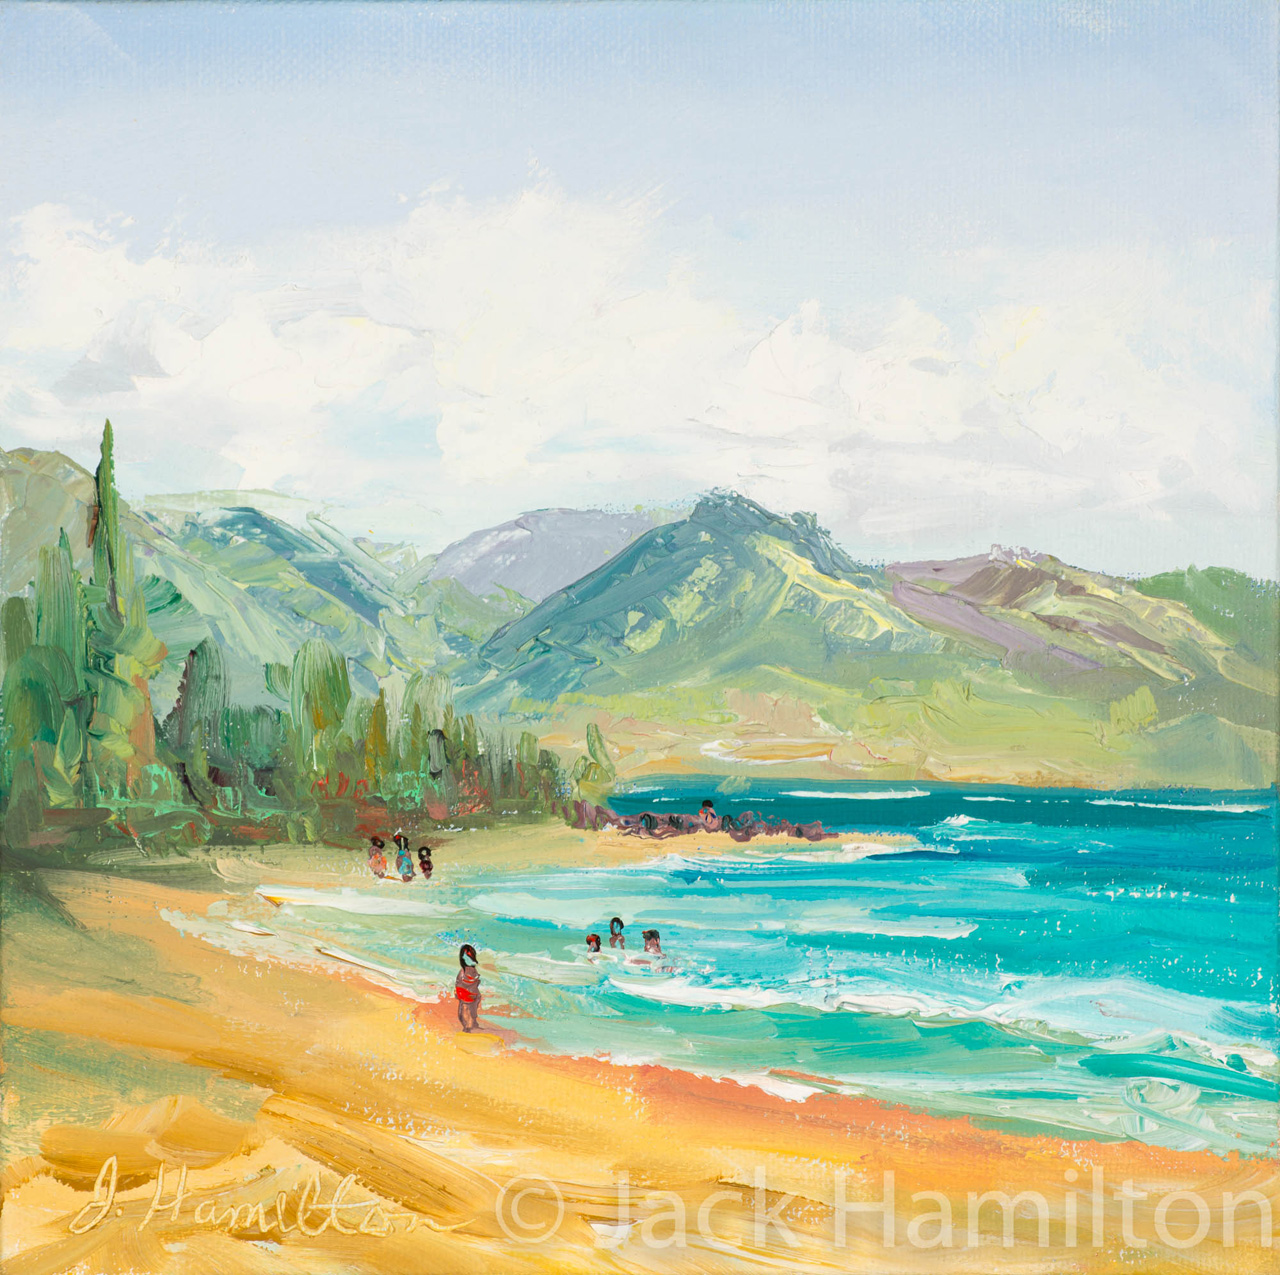 Eight At The Beach by Jack Hamilton oil on canvas